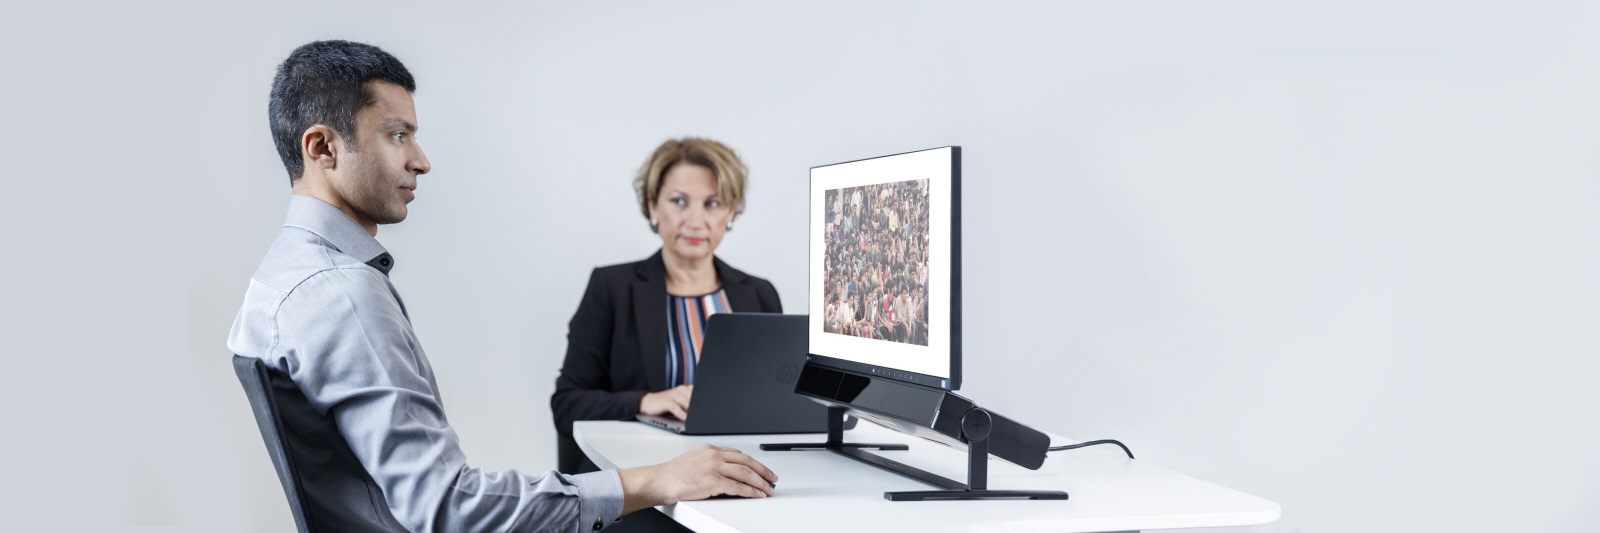 A test participant looks at Tobii Pro Spectrum eye tracker with face recognition stimulus